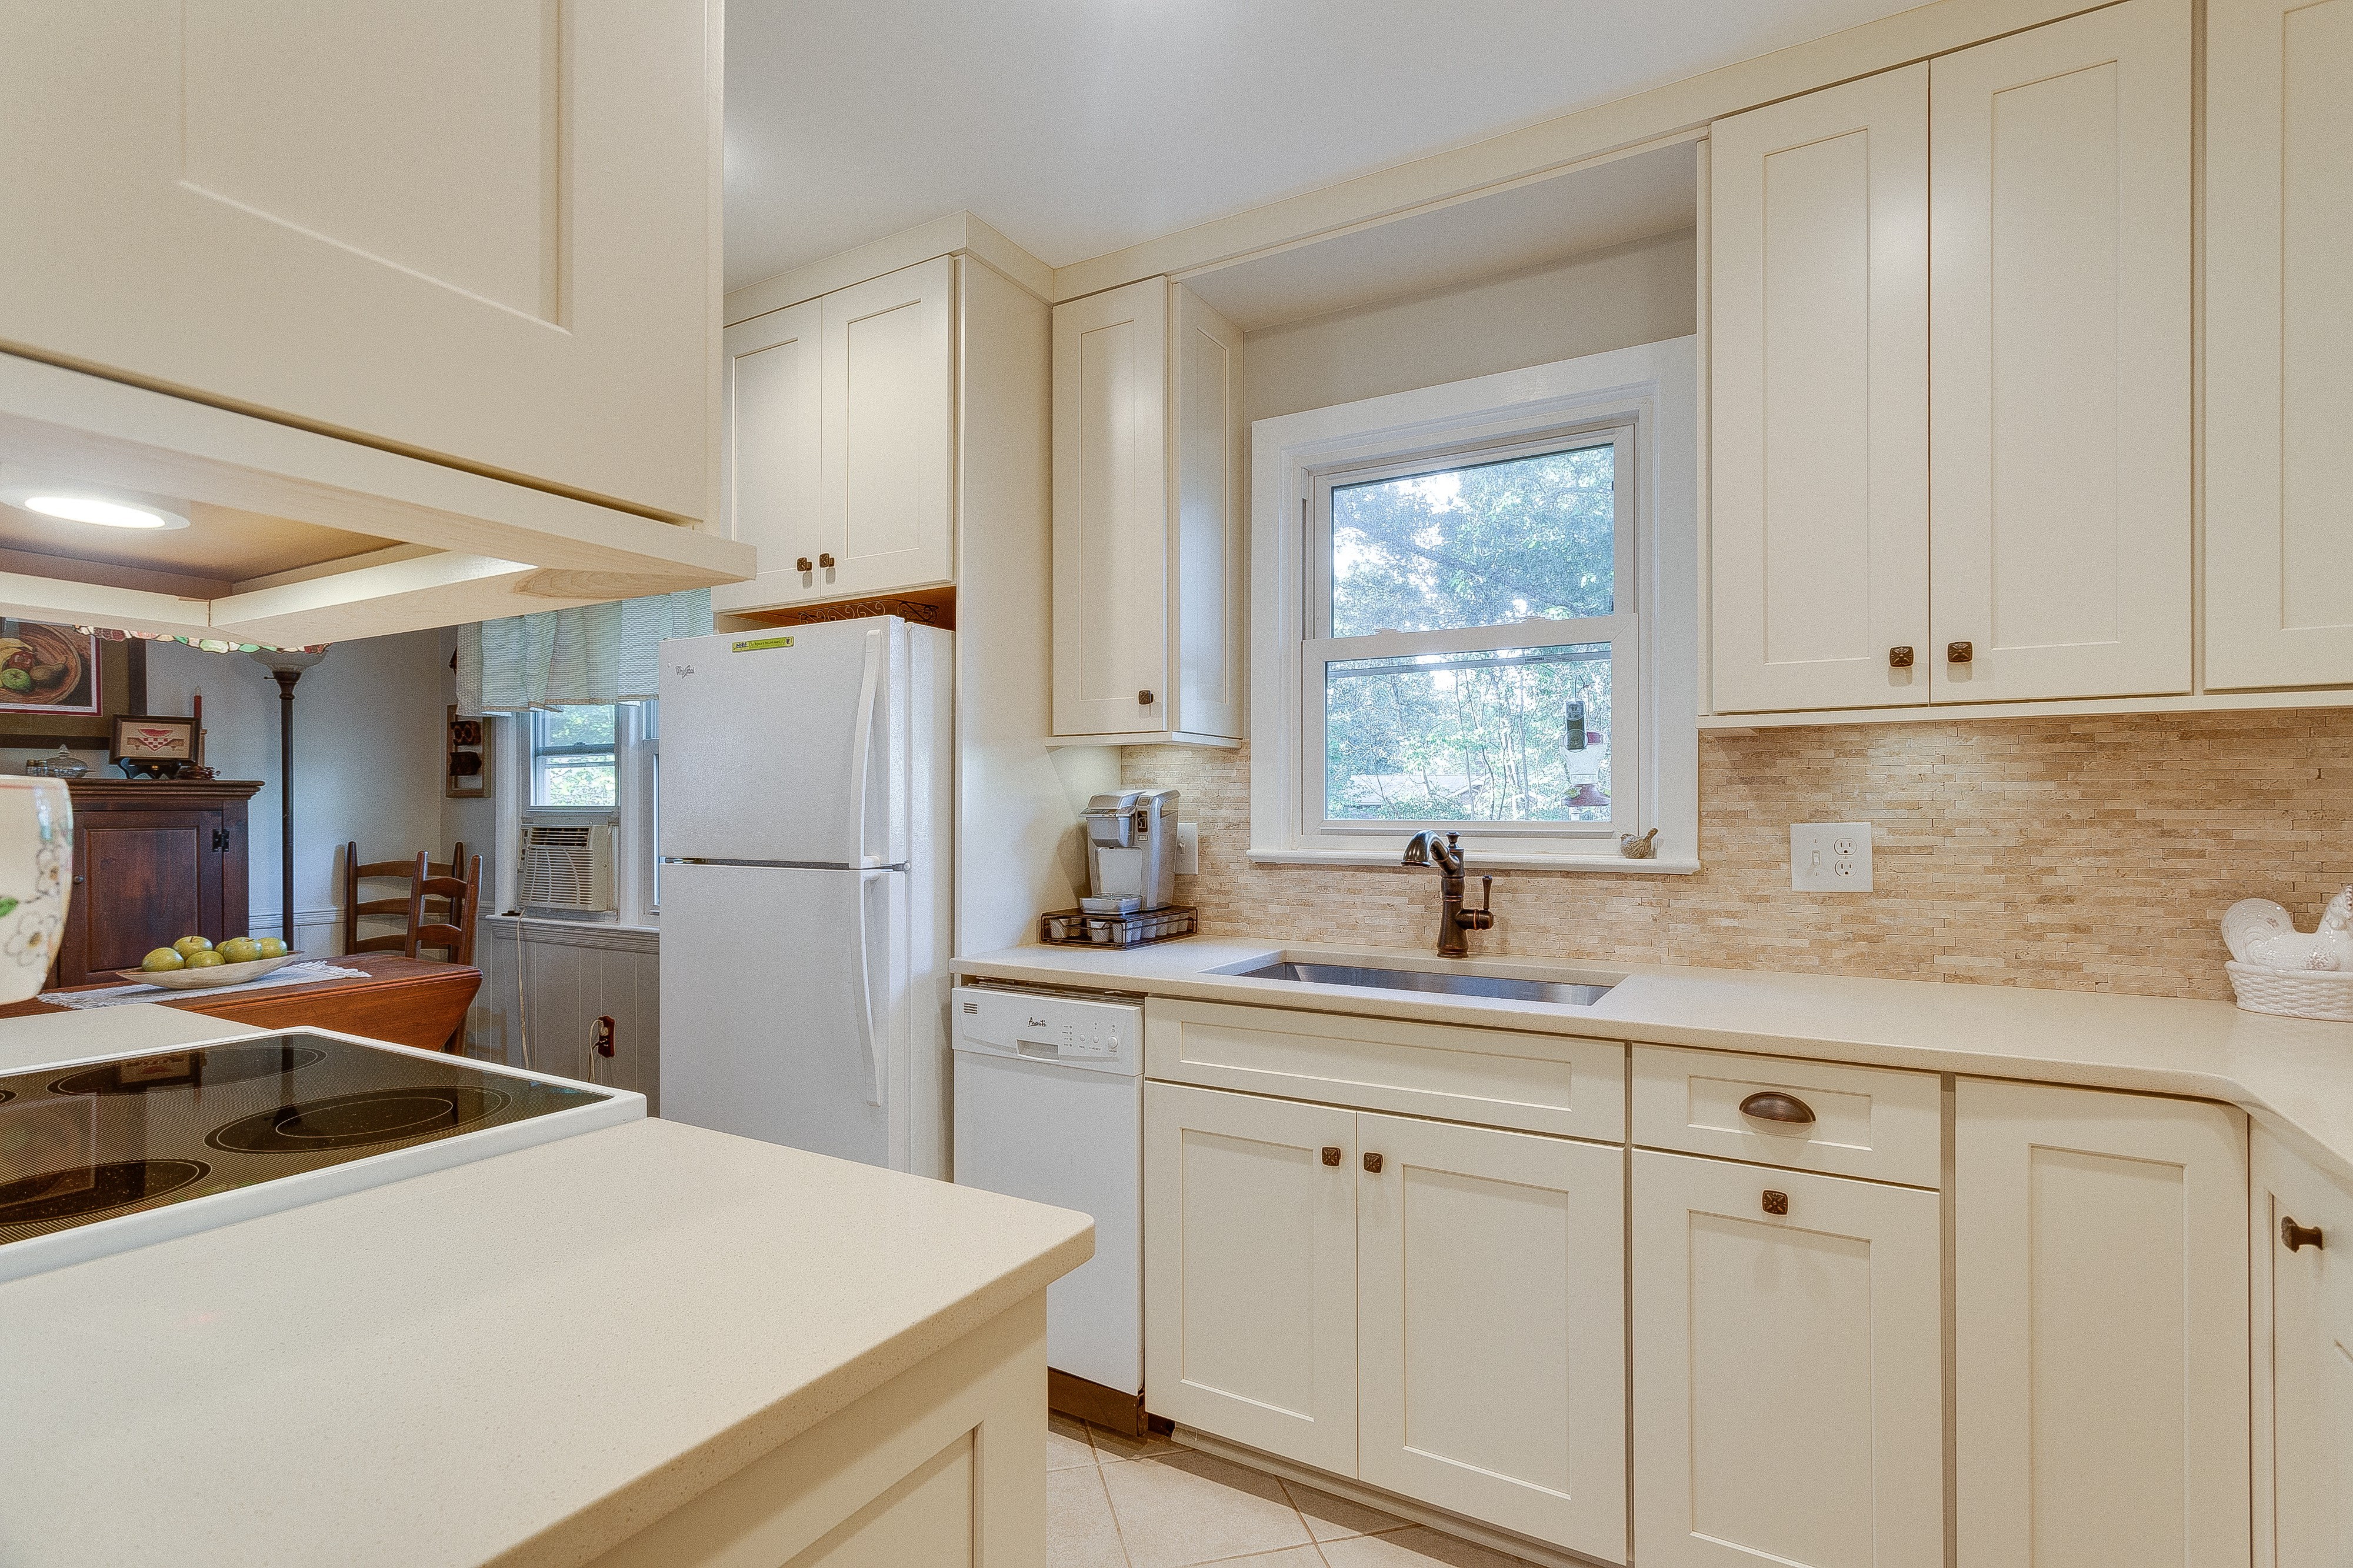 6 Top Trends In Kitchen Remodel Ideas For 2017 By Evelyn Amelia Medium